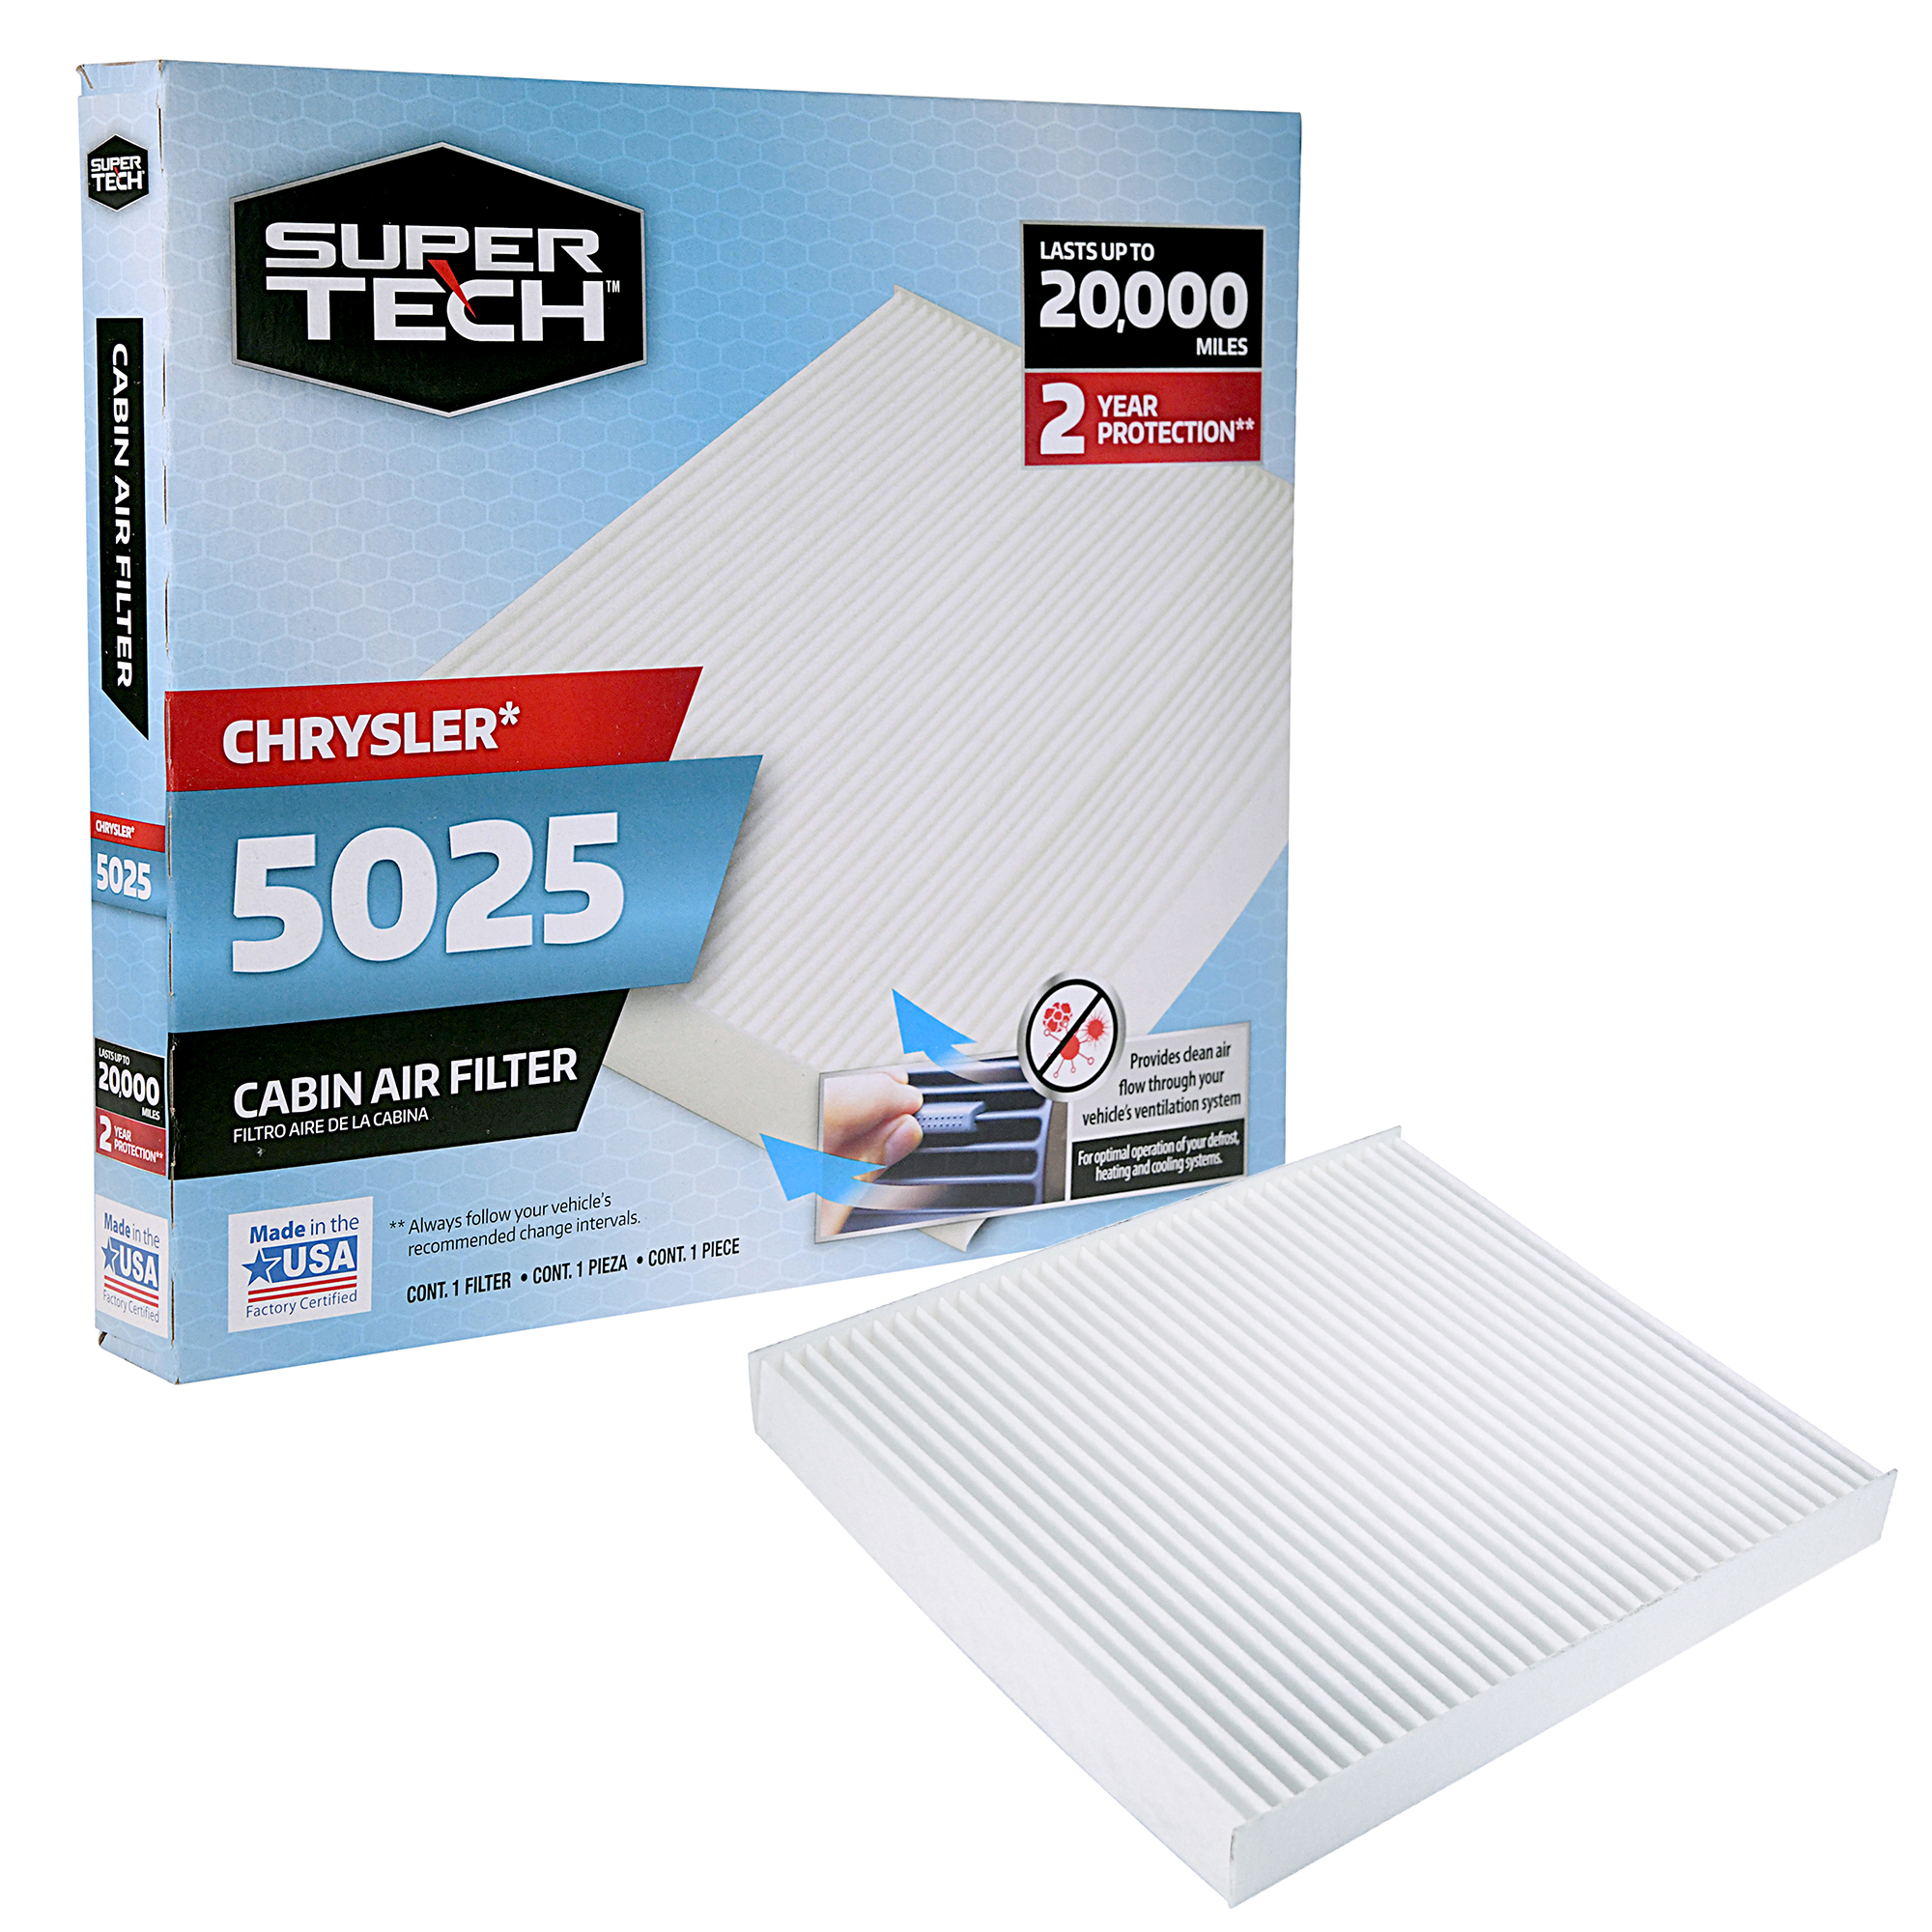 SuperTech Cabin Air Filter 5025, Replacement Air/Dust Filter for Chrysler